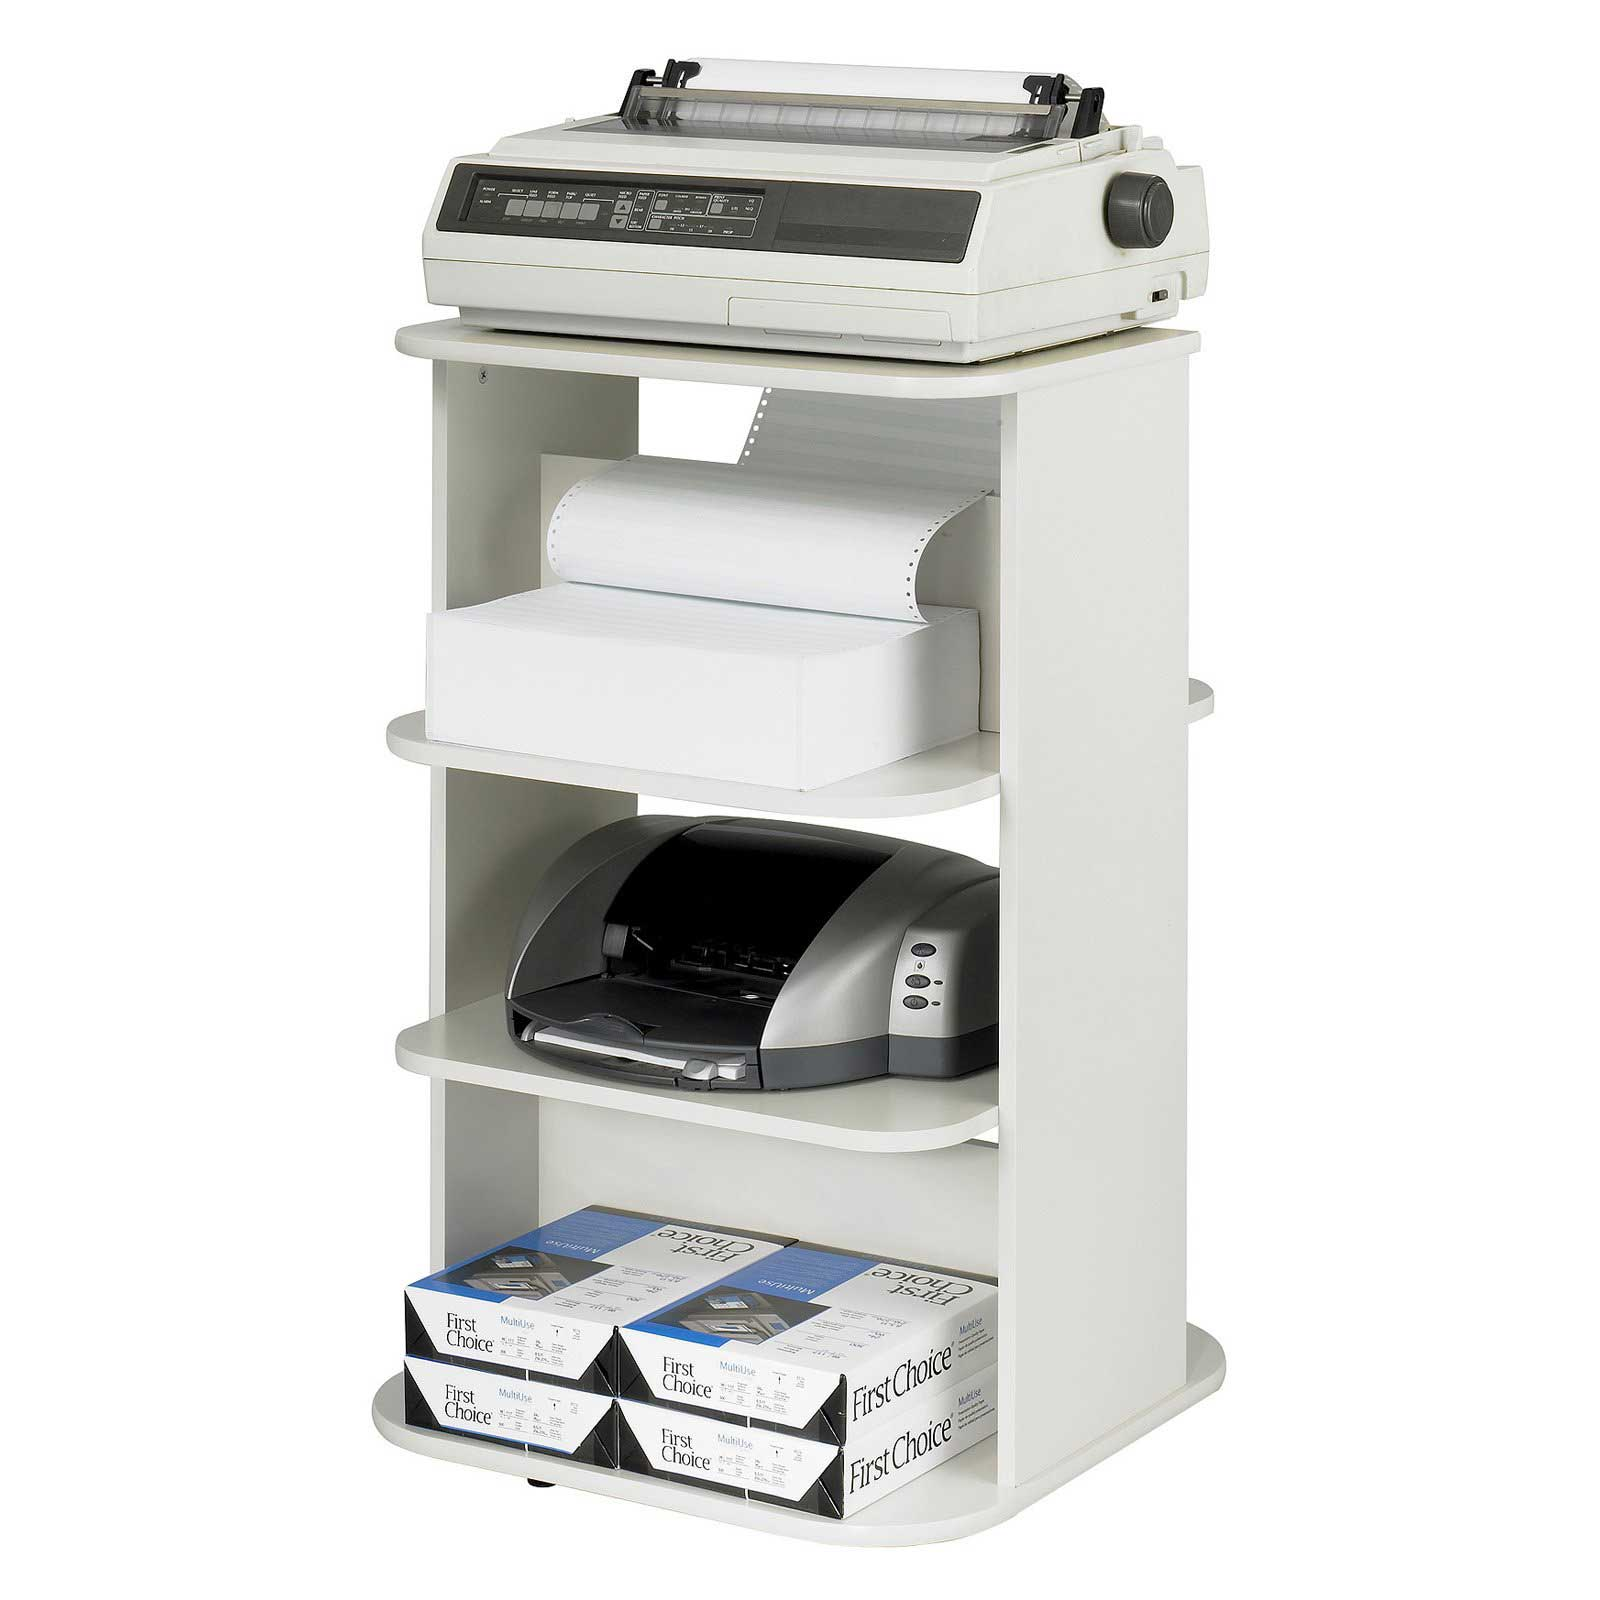 Safco Double Rotating Office Printer Stand